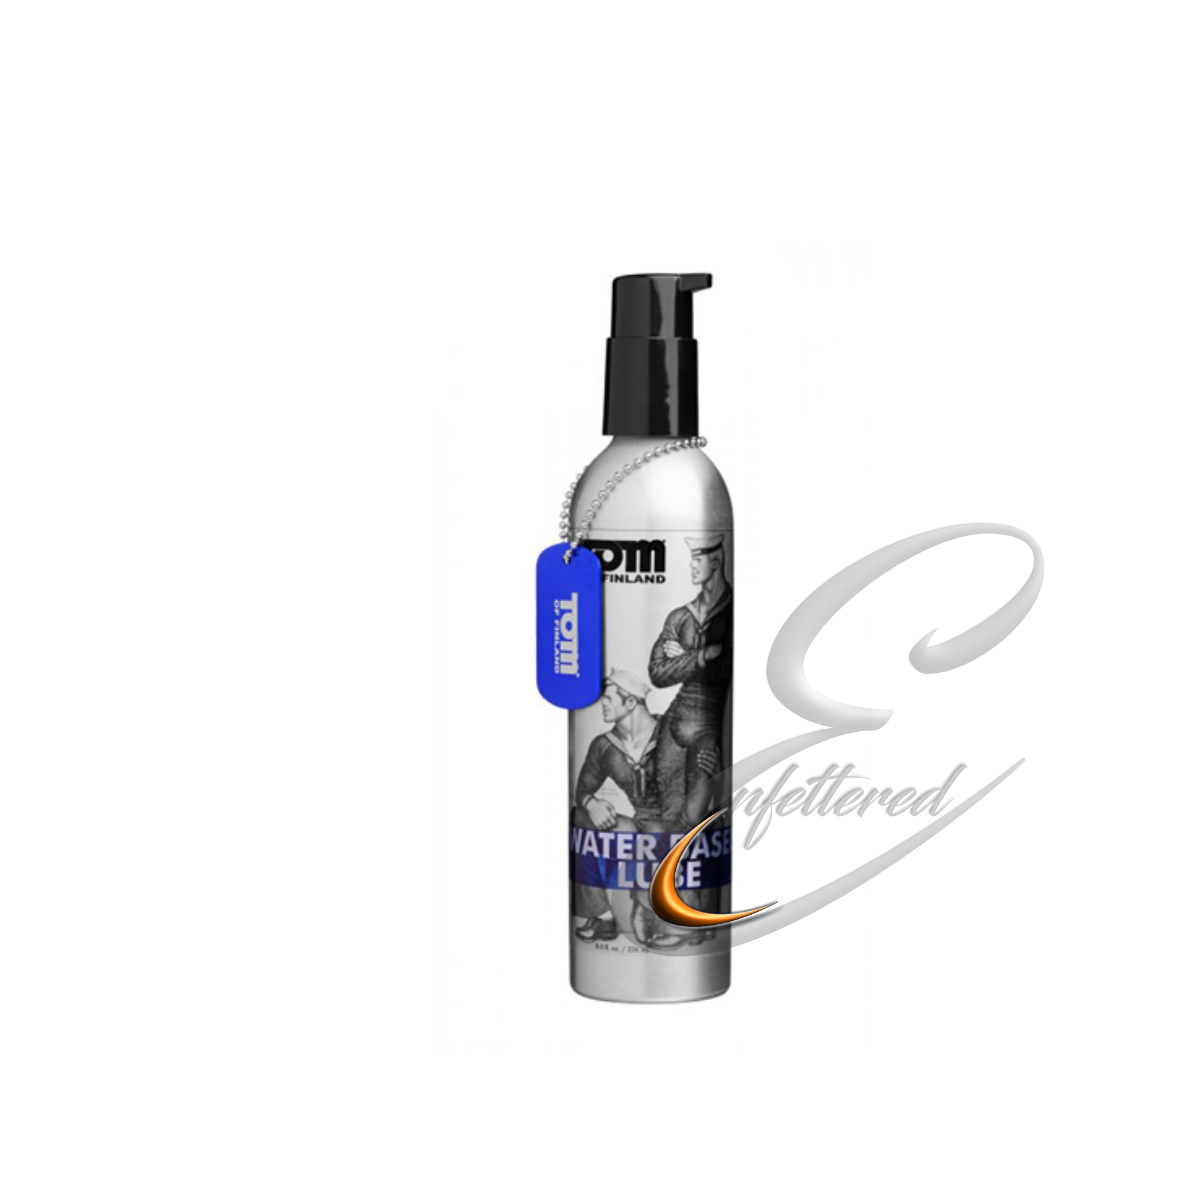 Enfettered Tom of Finland Lube